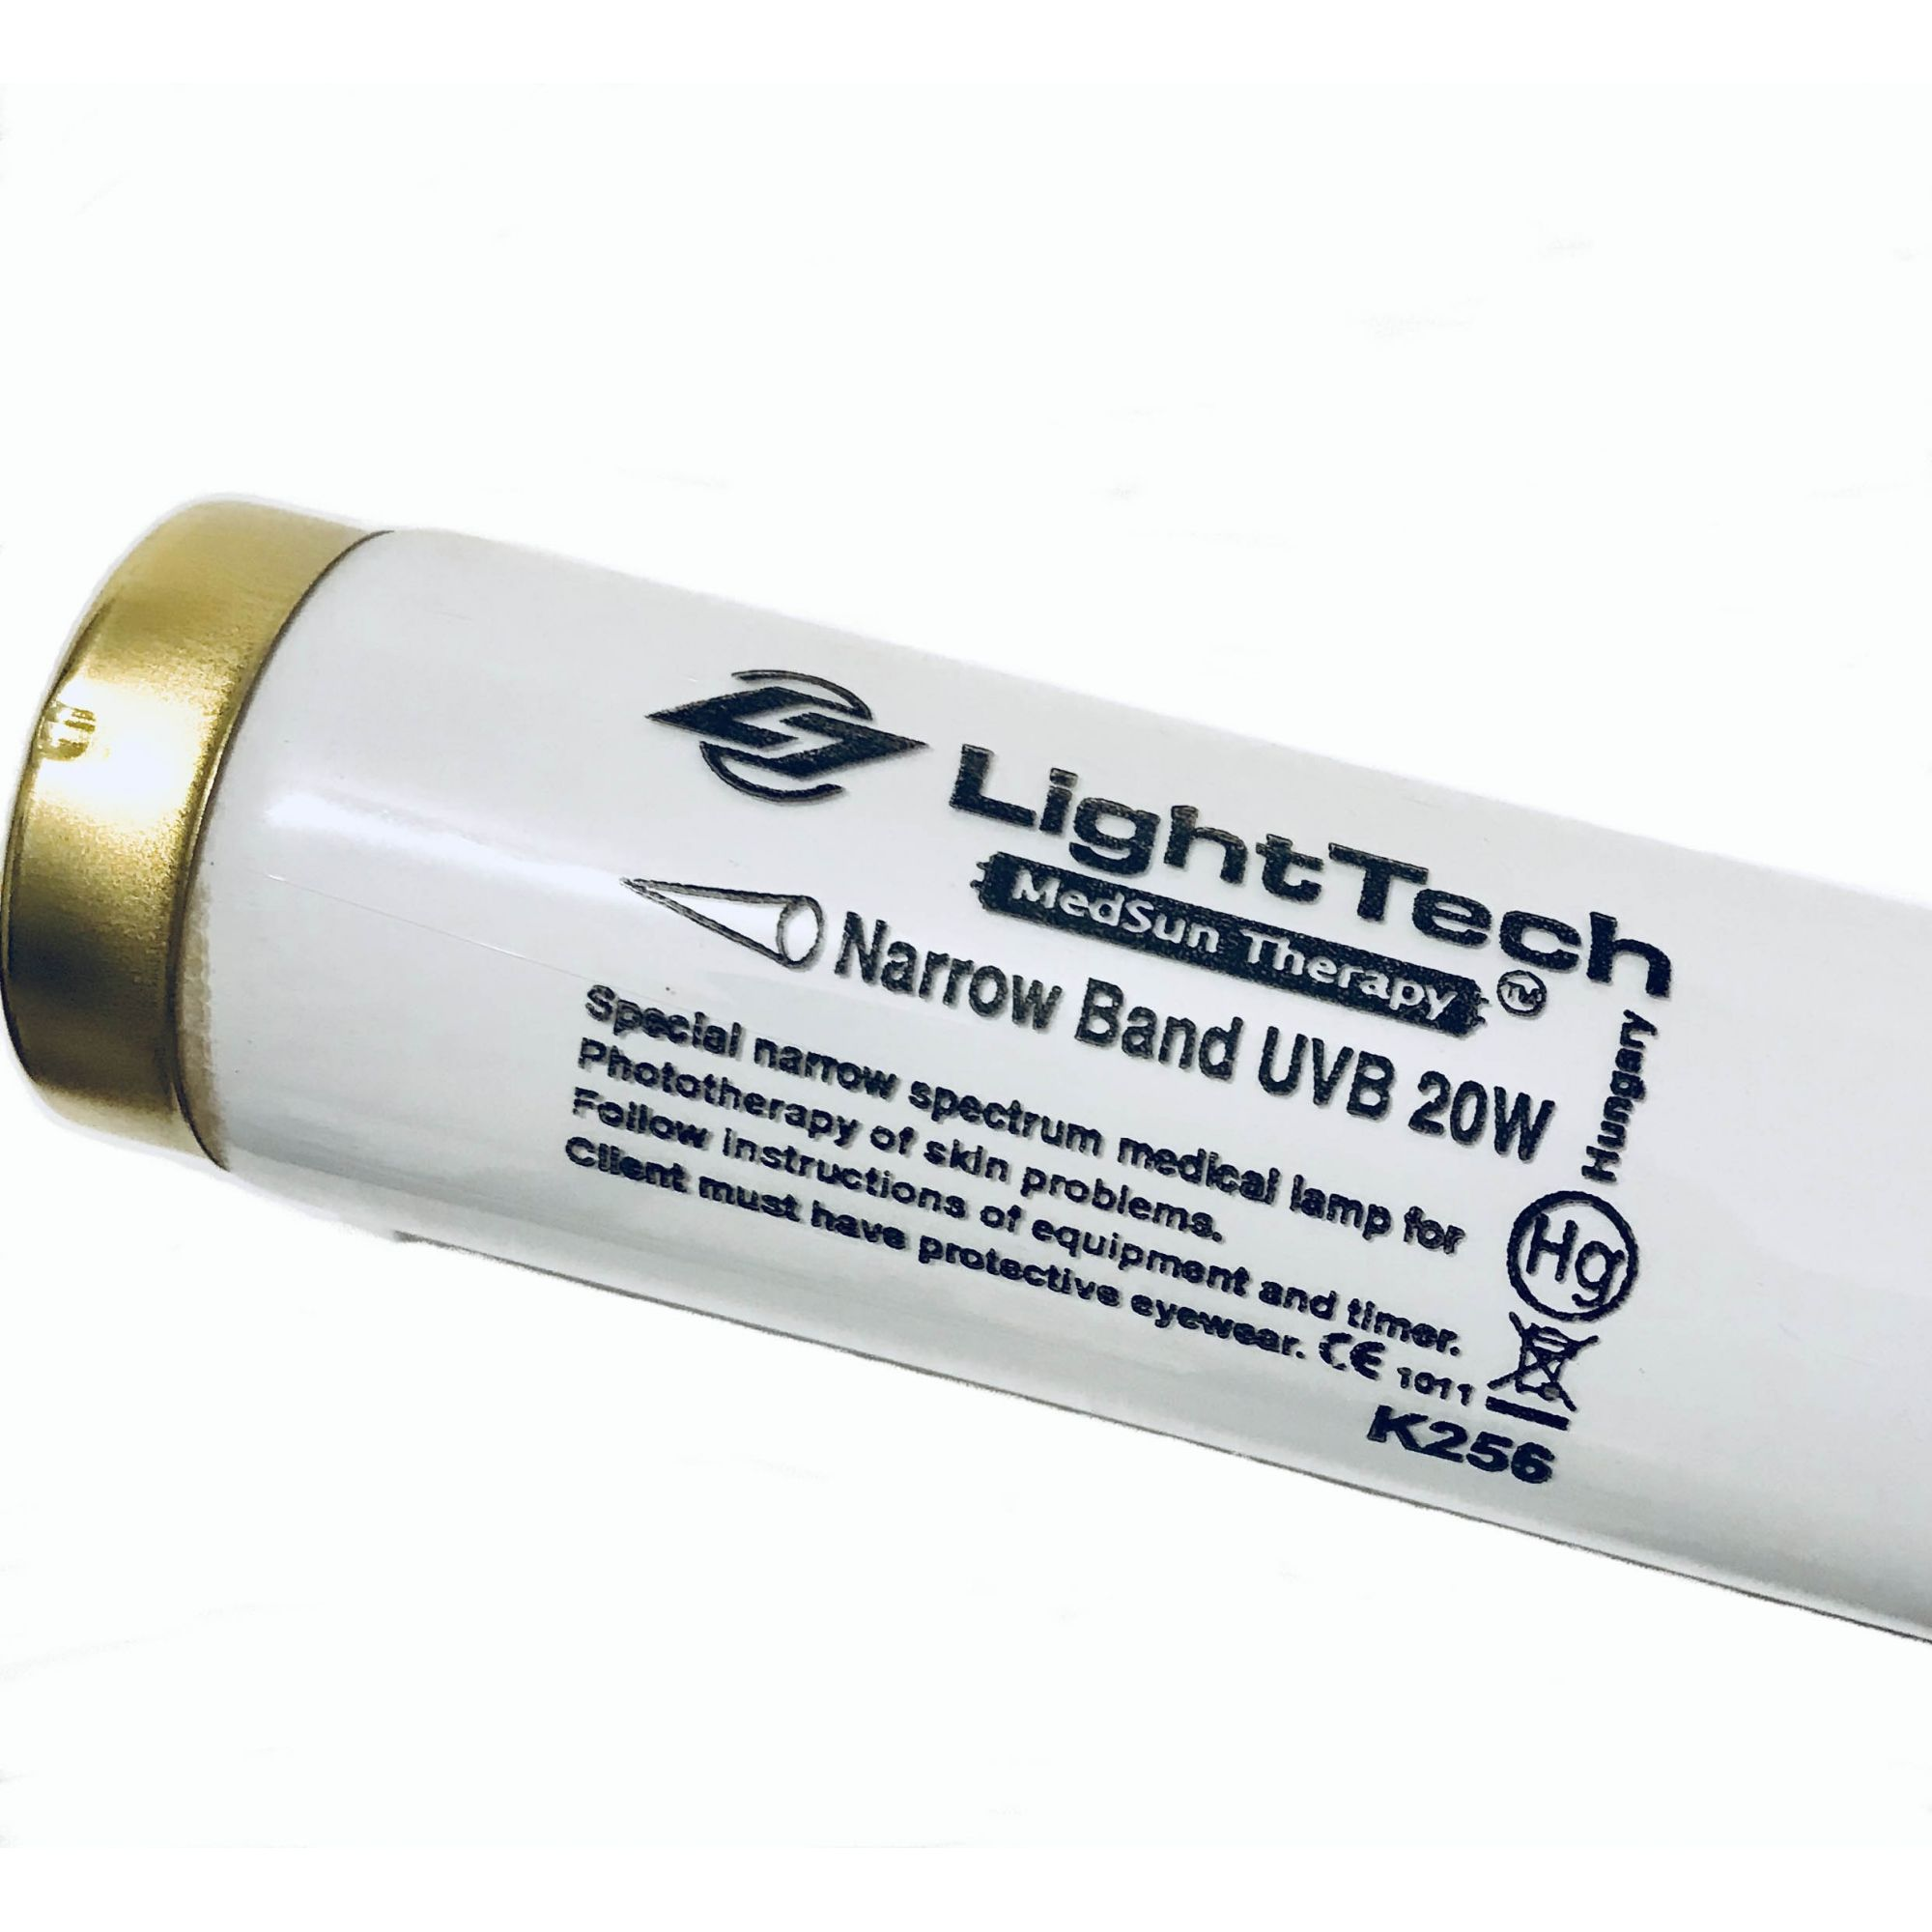 Cod. TL20/01 Lâmpada UV-B Narrow Band TL20/01   - lampadas.net